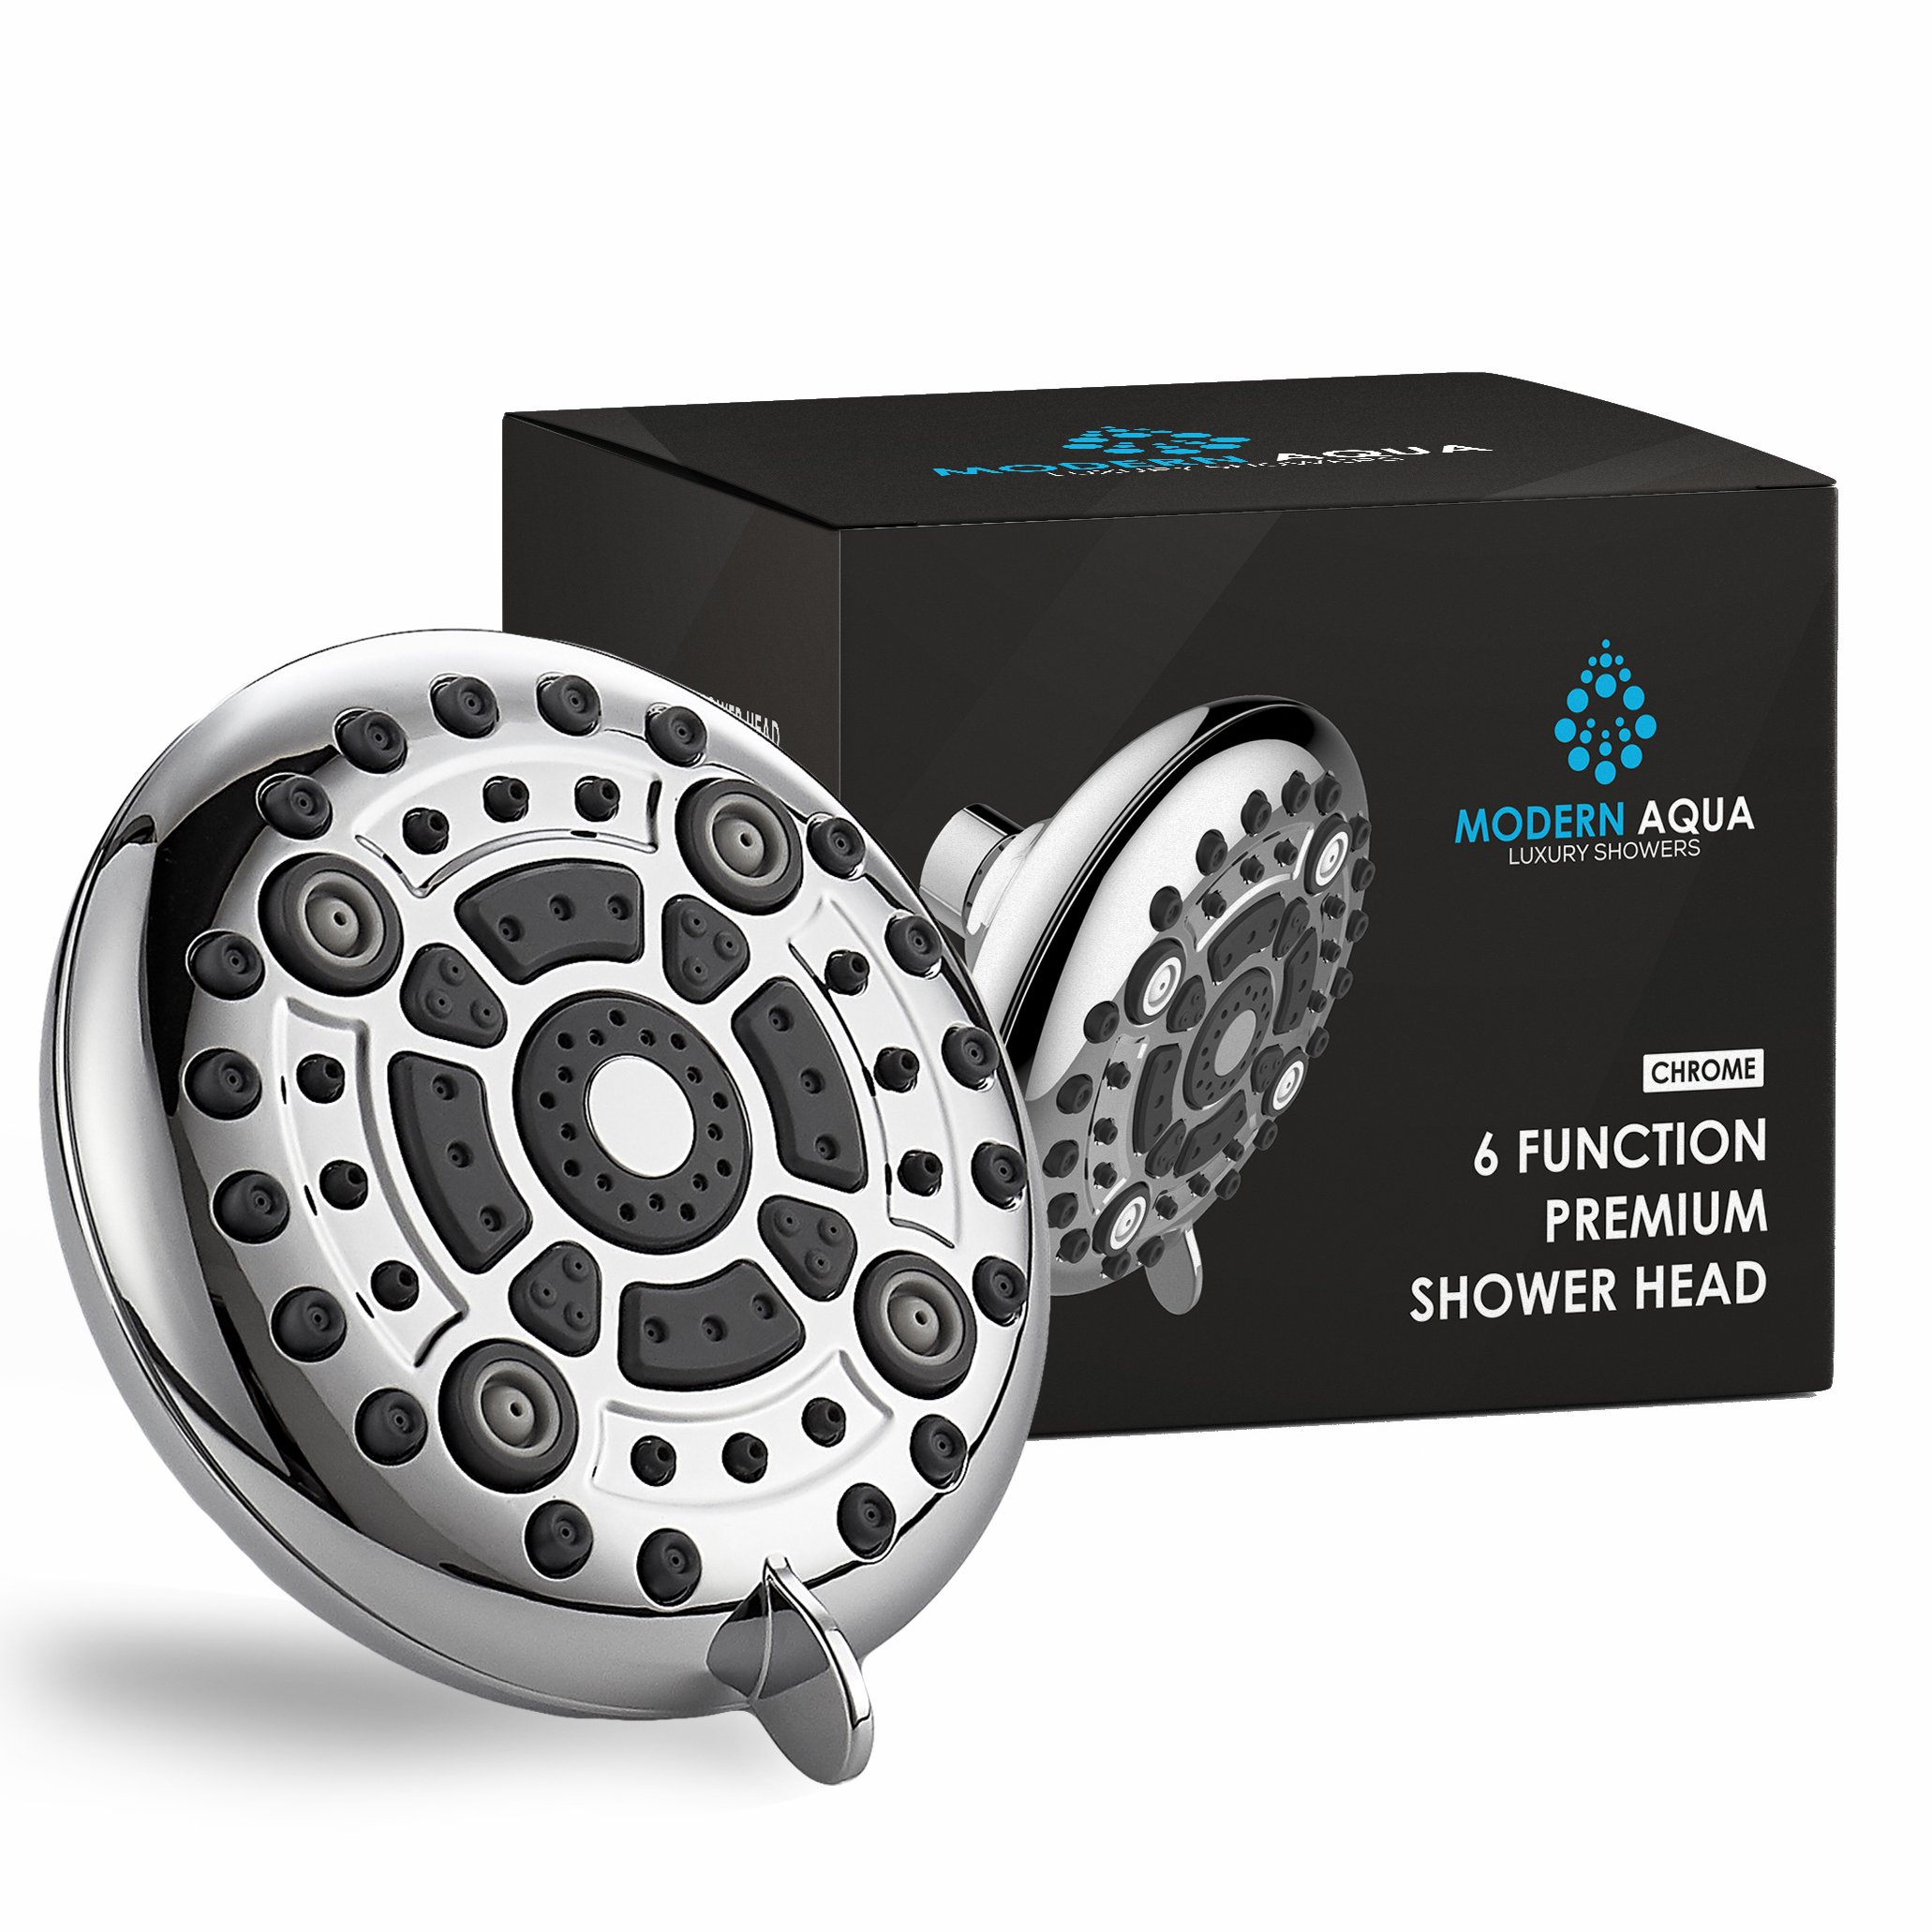 ModernAqua 6-function 5'' Shower Head - 2.5 GPM High Flow - Luxury Chrome Rain Showerhead with Anti-Clogging Silicone Jets - Removable Water Restrictor - Wall Mount - Self Cleaning nozzle